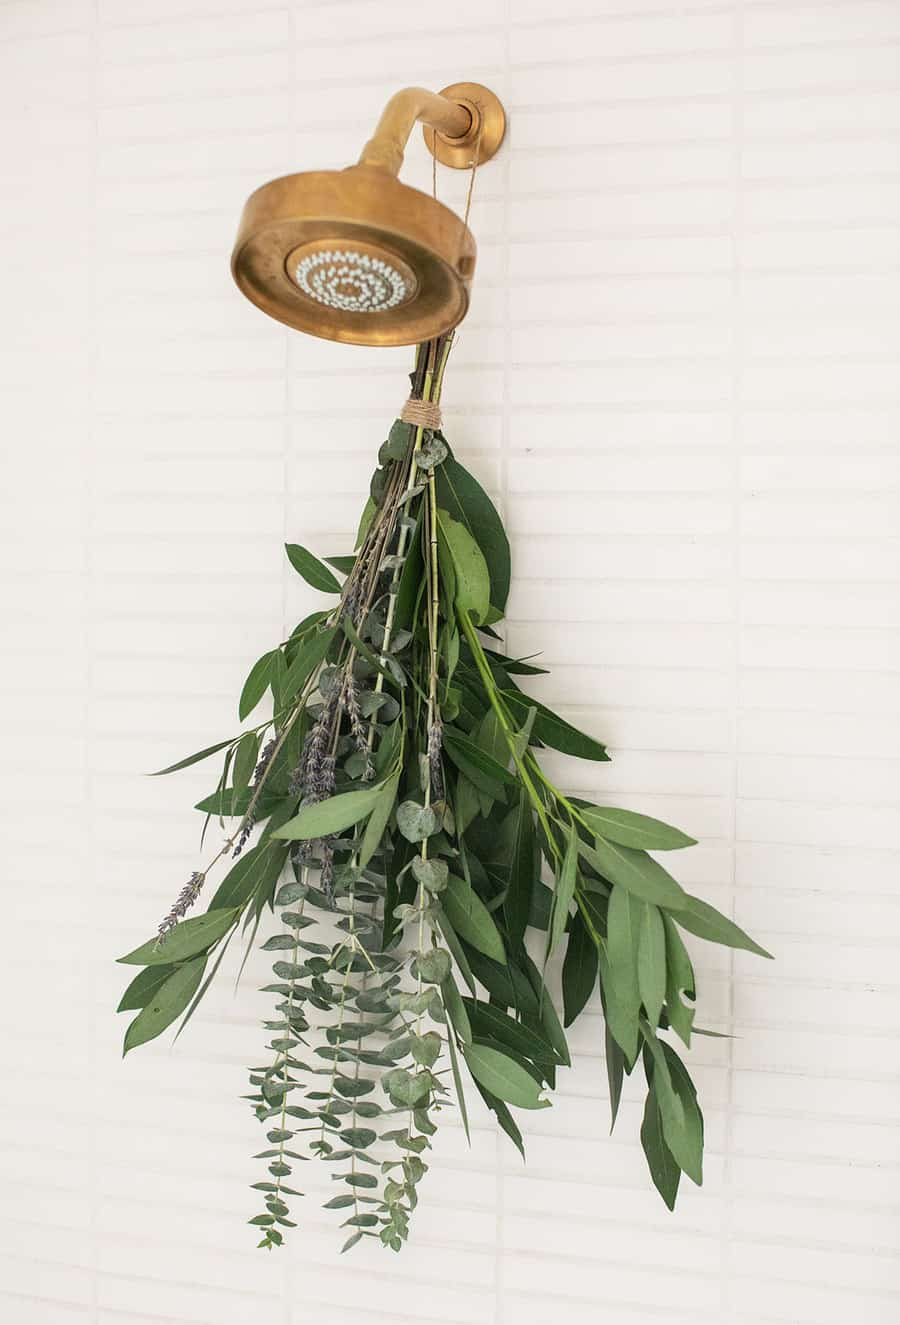 Eucalyptus in shower hanging from shower head